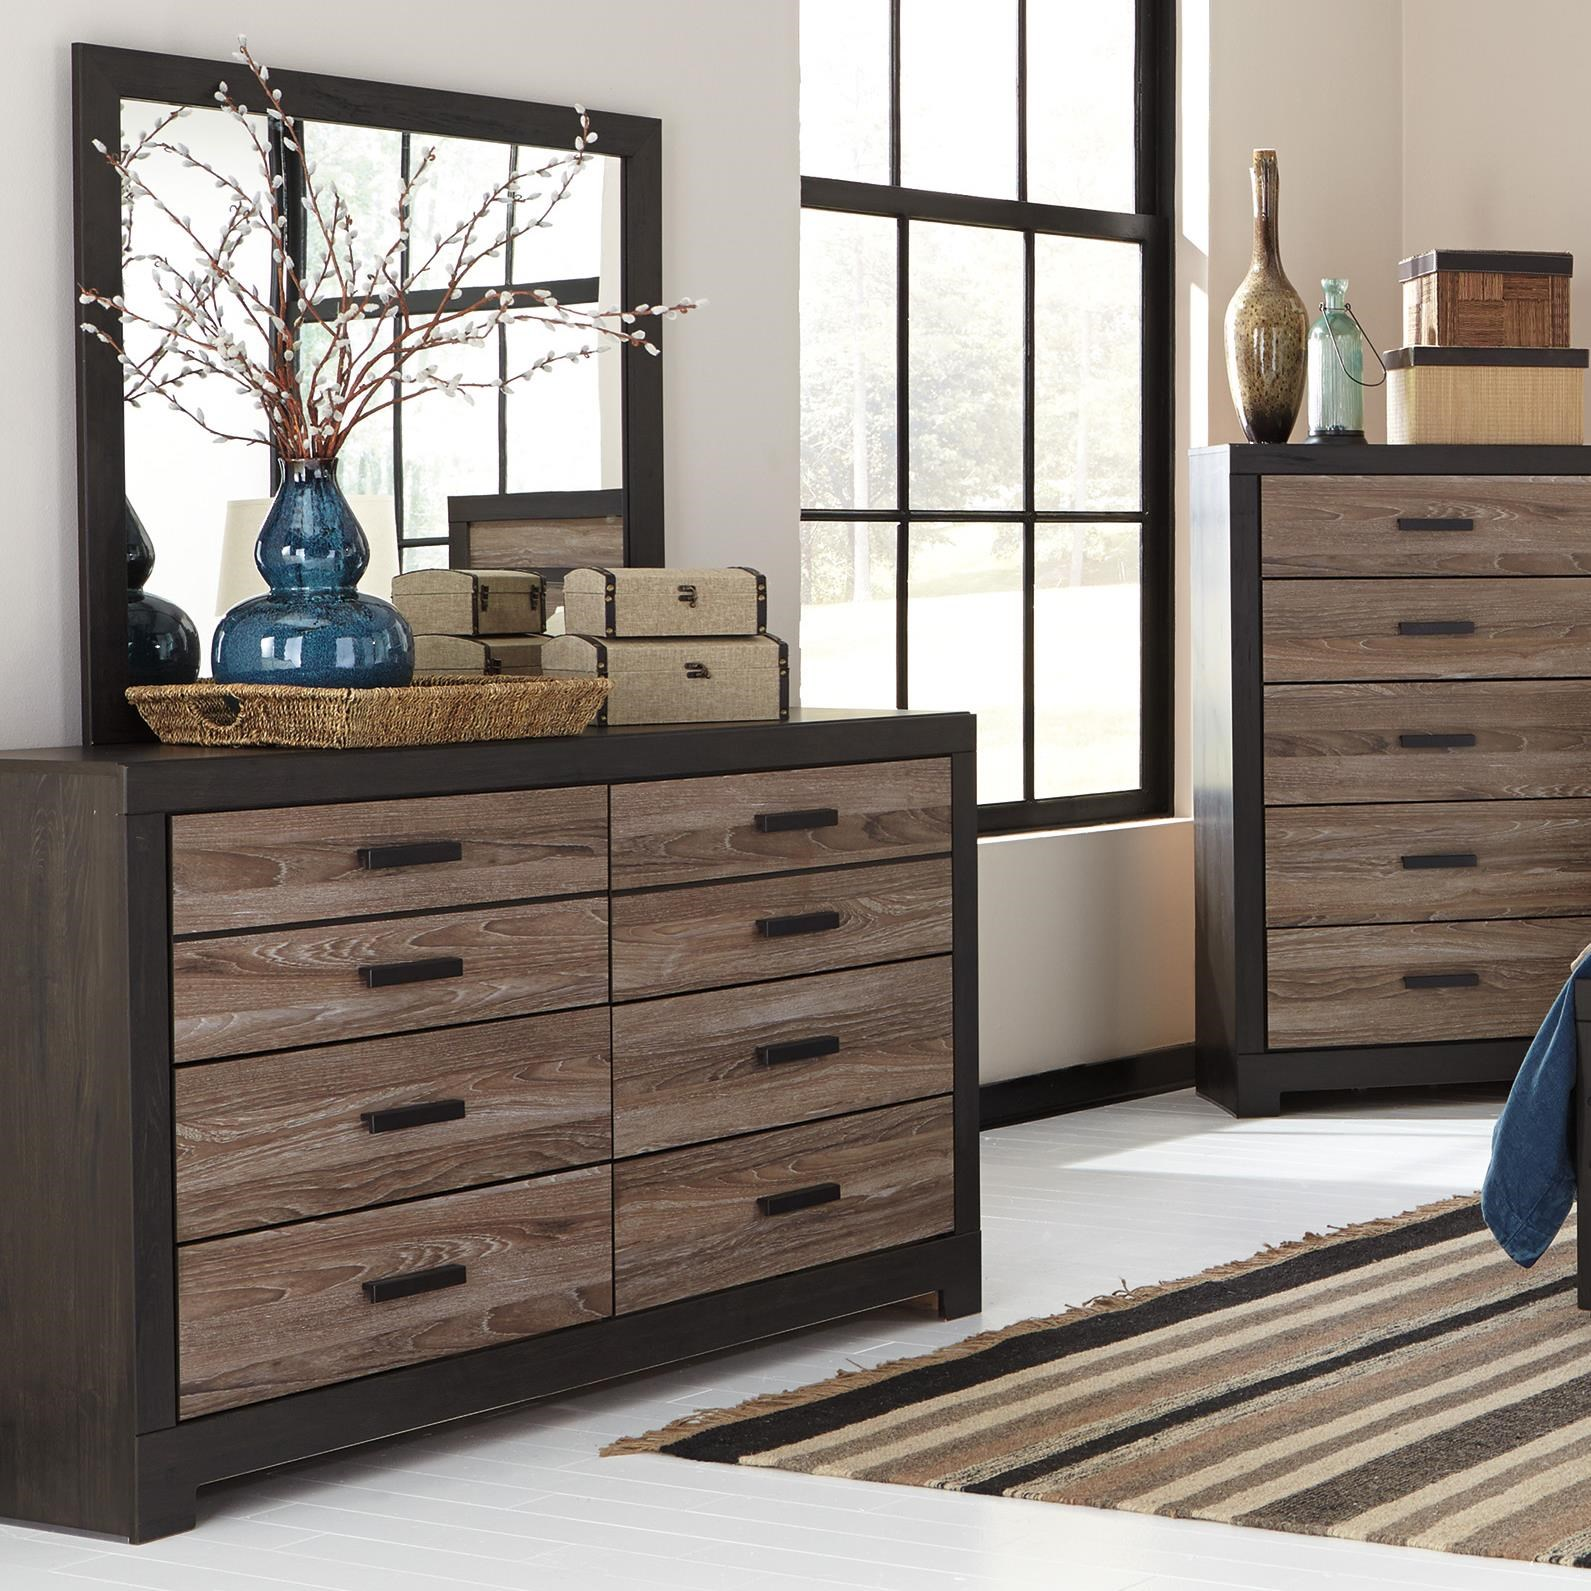 194 & Harlinton Rustic Two-Tone Dresser \u0026 Bedroom Mirror by Signature Design by Ashley at Wayside Furniture